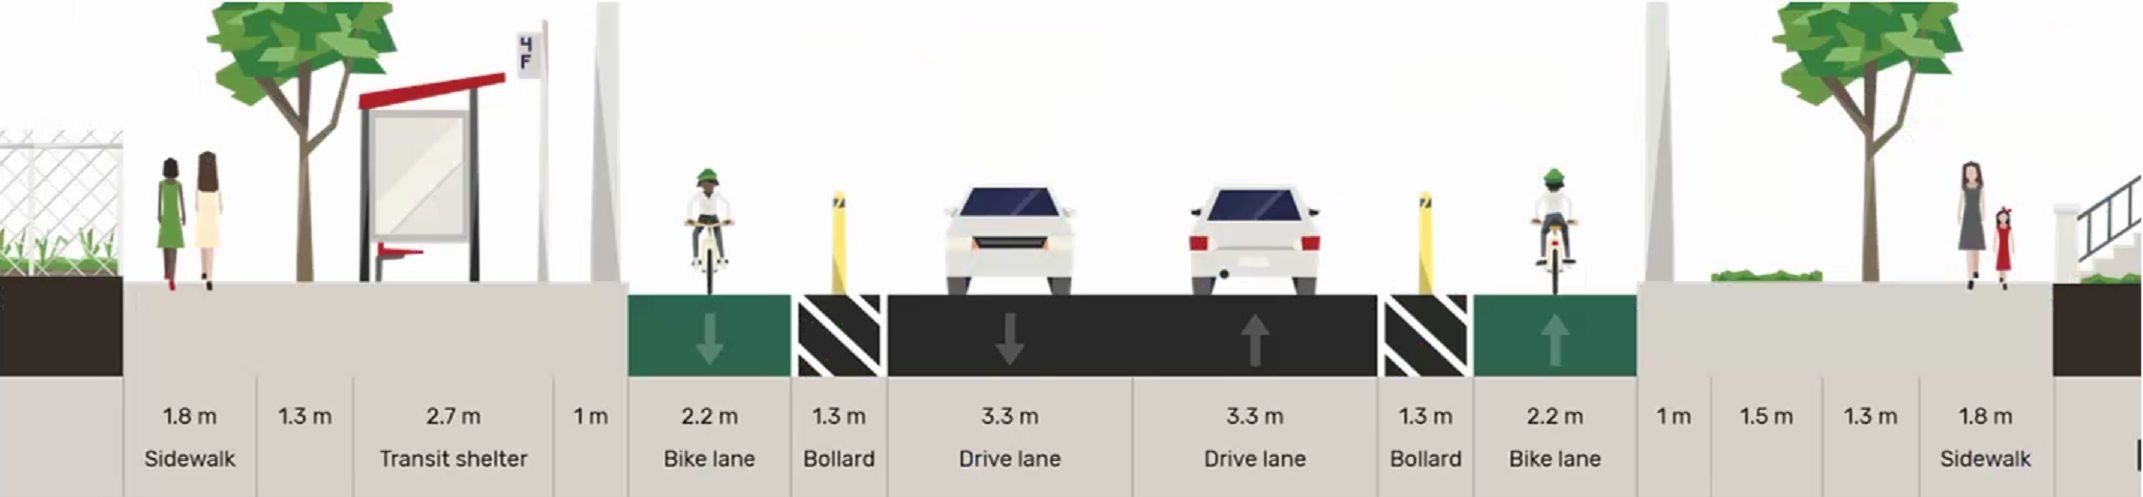 A cross section of the Brimley Road ActiveTO bike lane. A 2.2 metre bike lane will run along the curb with a 1.3 metre buffer with bollards. One car lane will remain in each direction.